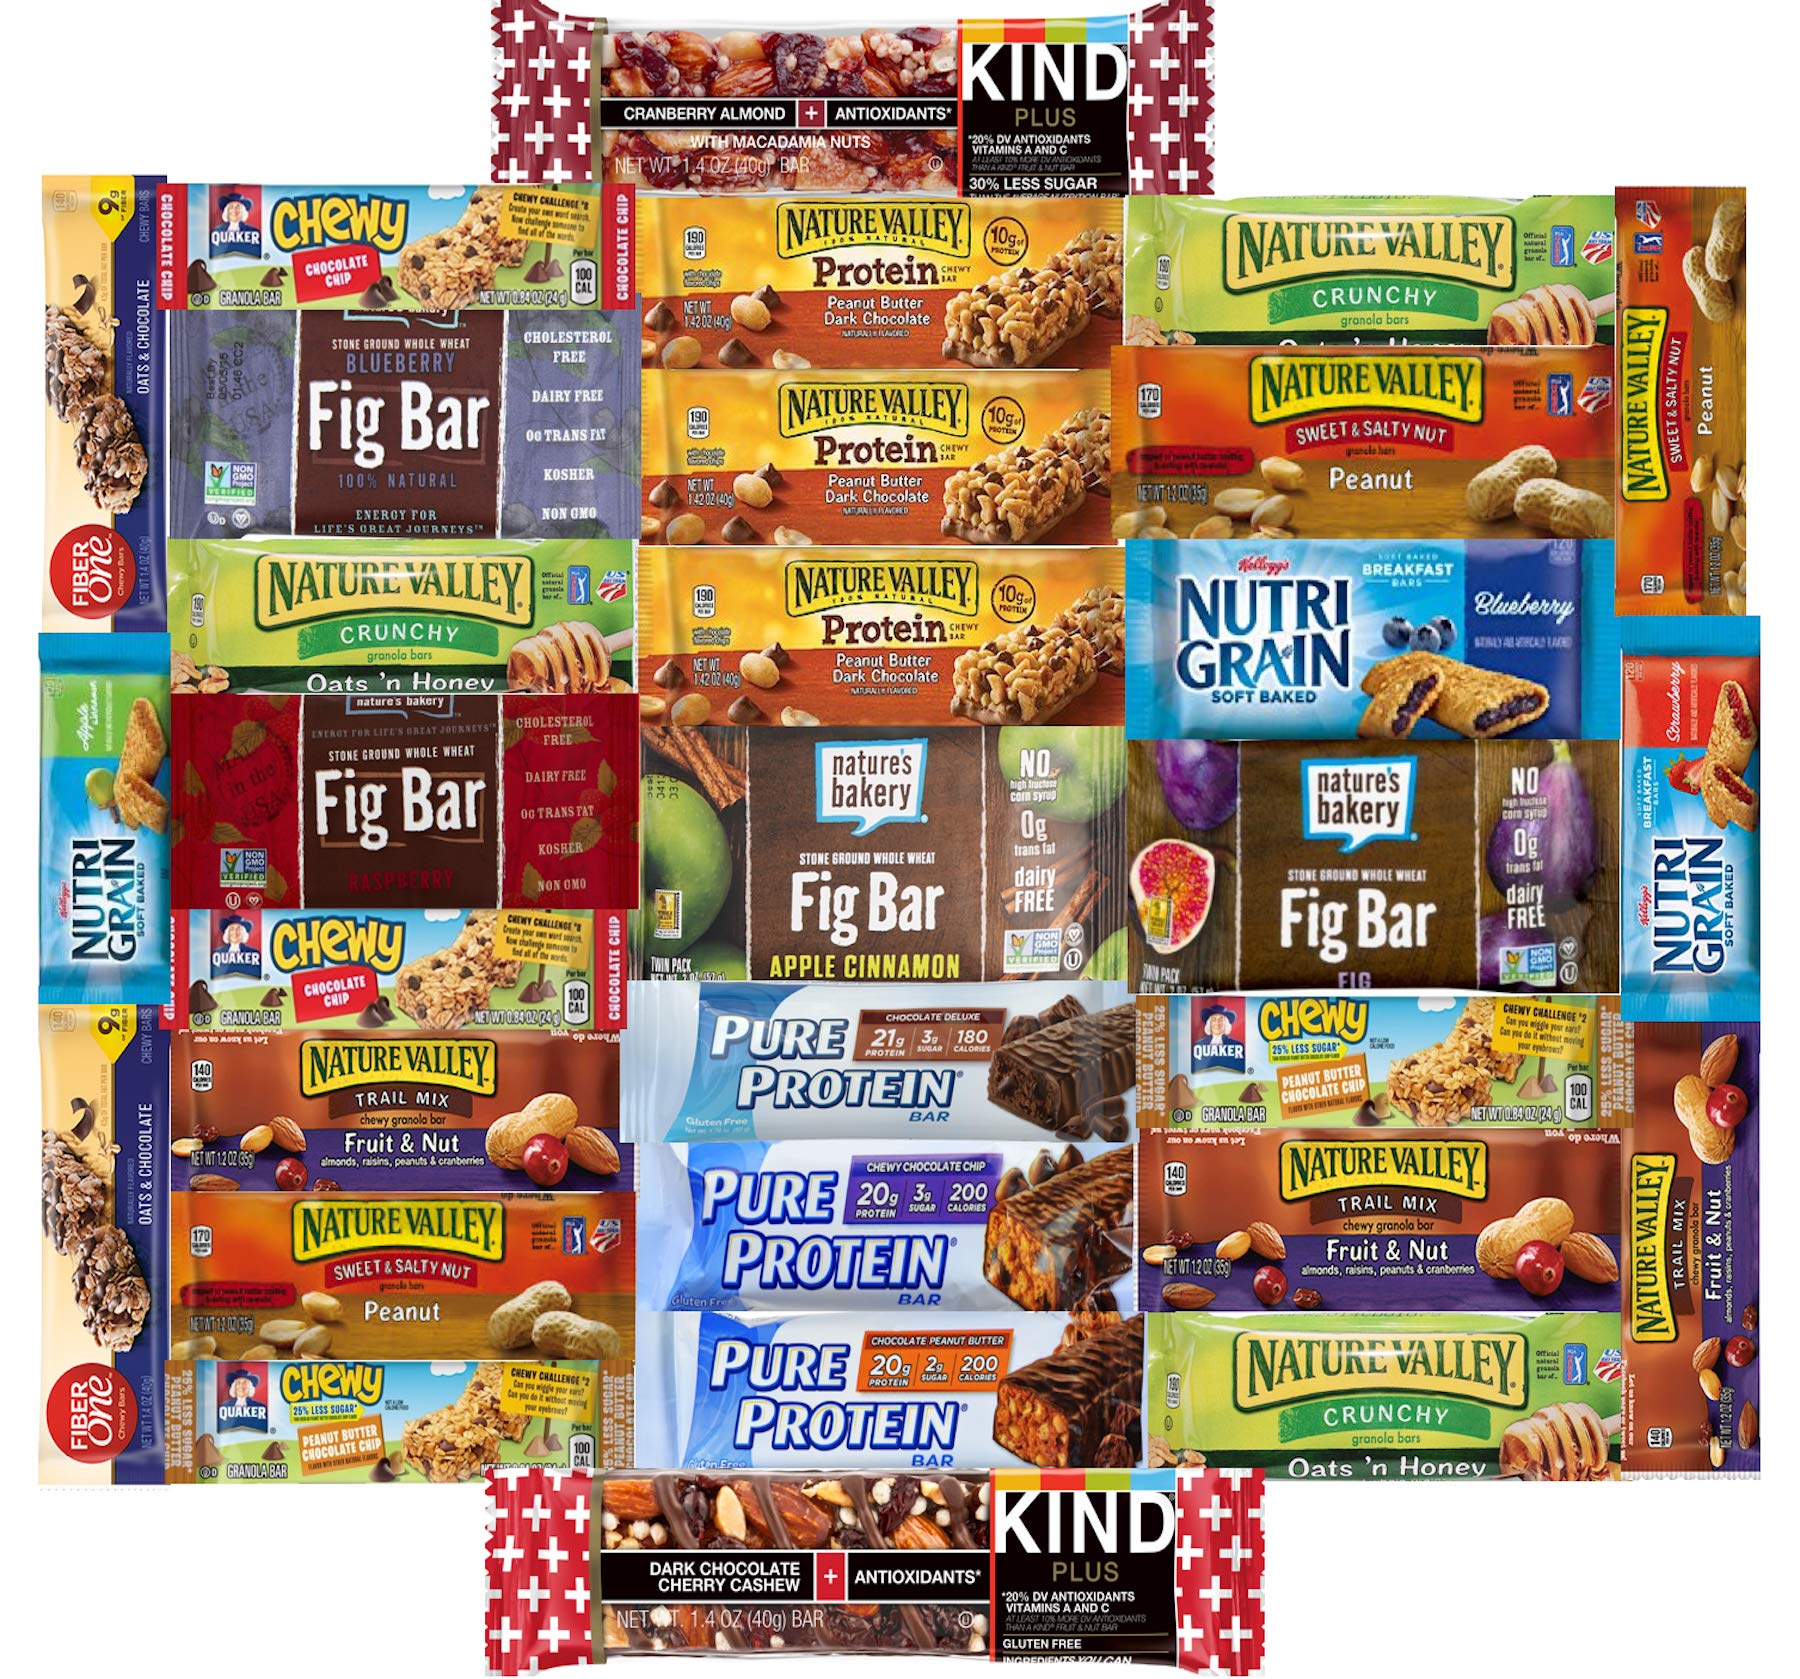 Fitness Box - Protein & Healthy Granola Bars NEW ASSORTMENTs Sampler Snack Box (30 Count) - Care Package - Gift Pack - Variety of Fitness, Energy Bars and KIND Bars. by LA Signature